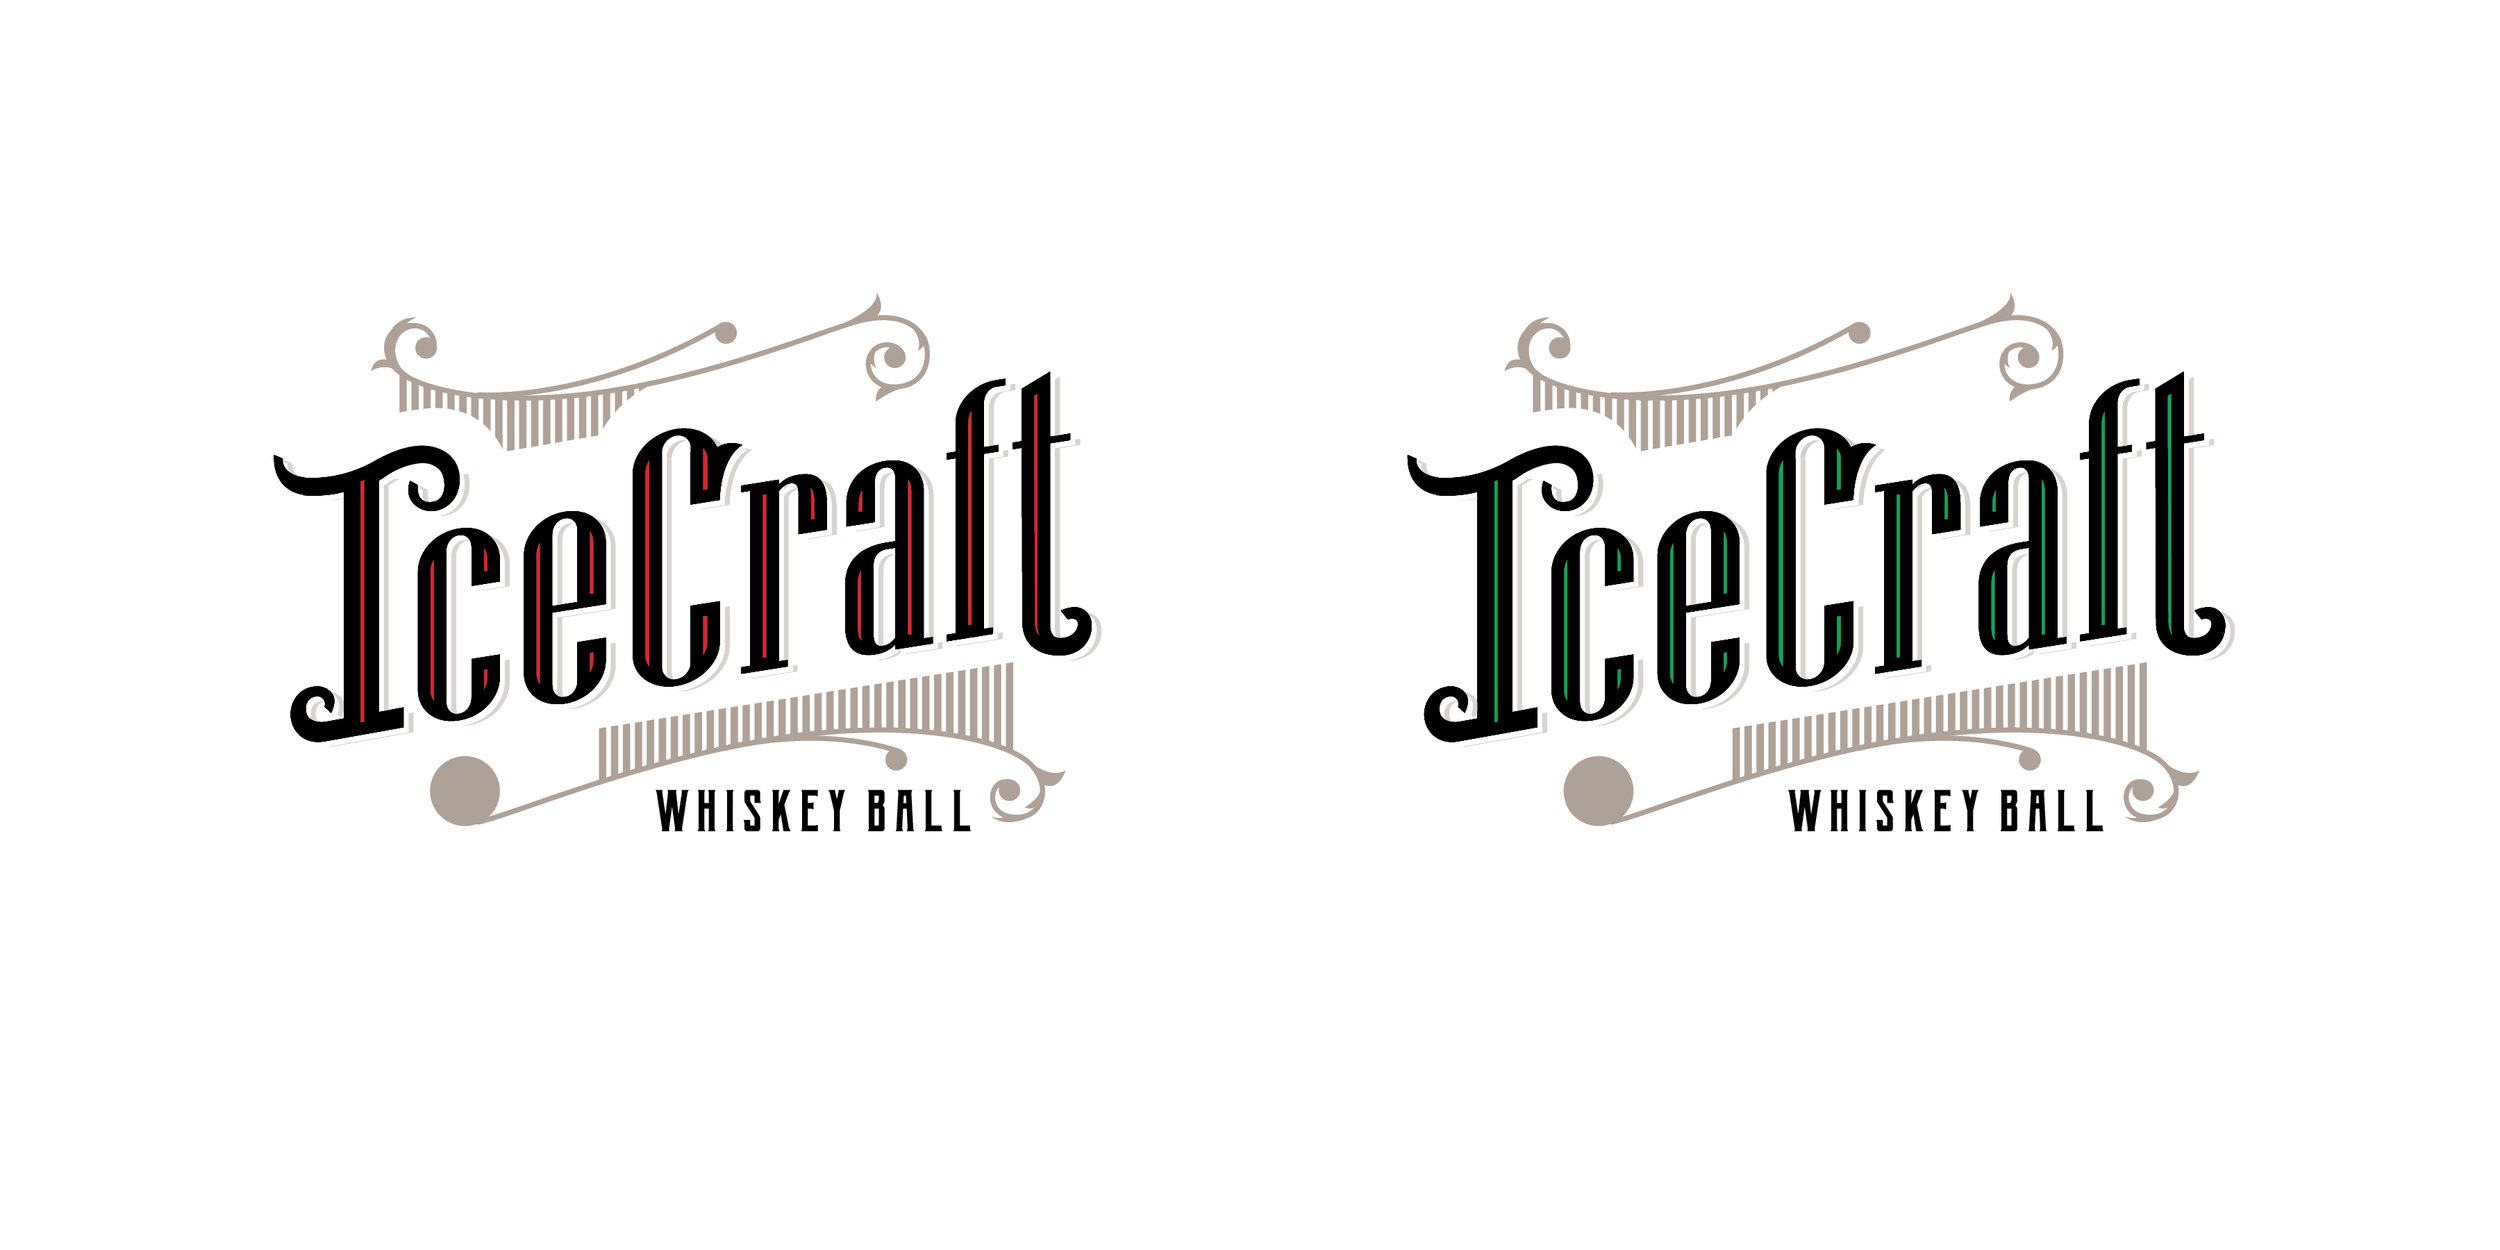 whiskey-ball-logo-design-by-jordan-fretz-desgin-17.jpg